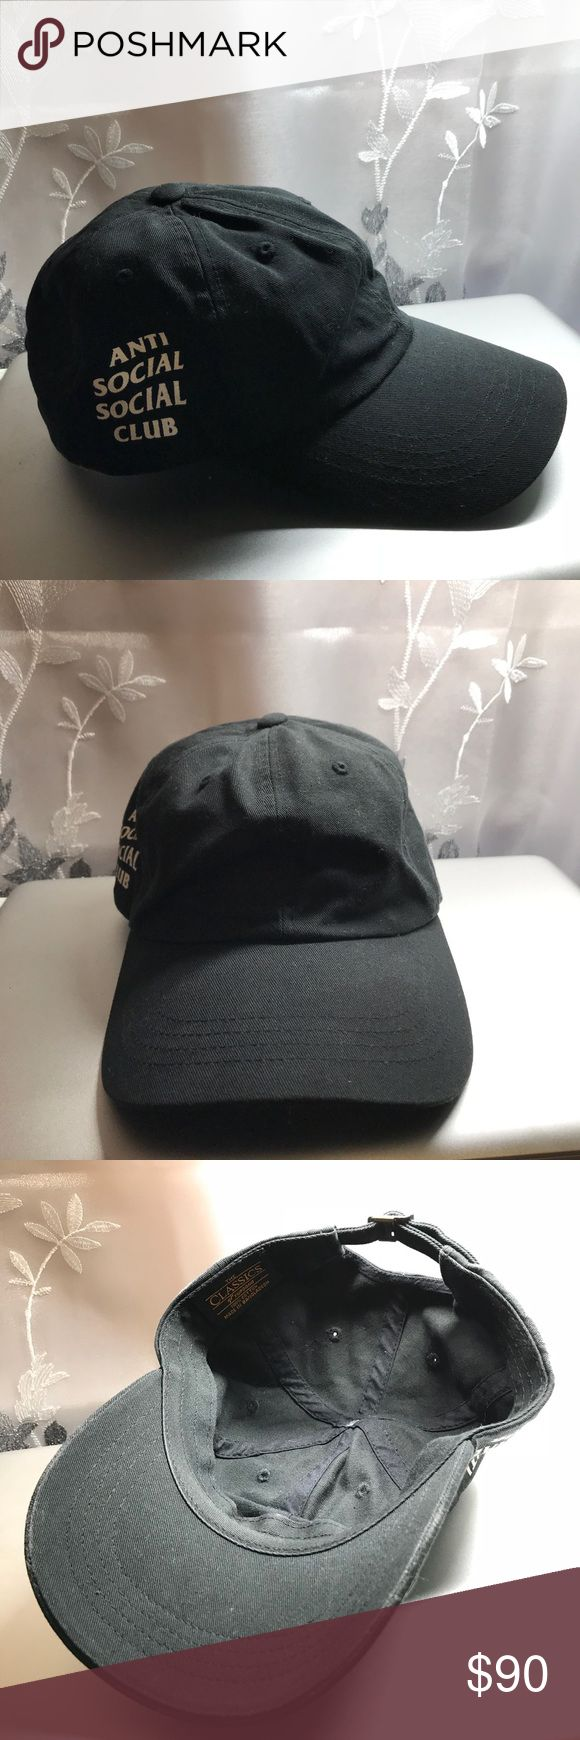 """Antisocial Social Club Black Hat Weird Cap 🌚 EUC, kept in good condition, worn only a few times, no imperfections, no weird smells, pet free home   🌚 Black antisocial social club hat """"Weird Cap""""  🌚 Feel free to offer! :) Anti Social Social Club Accessories Hats"""